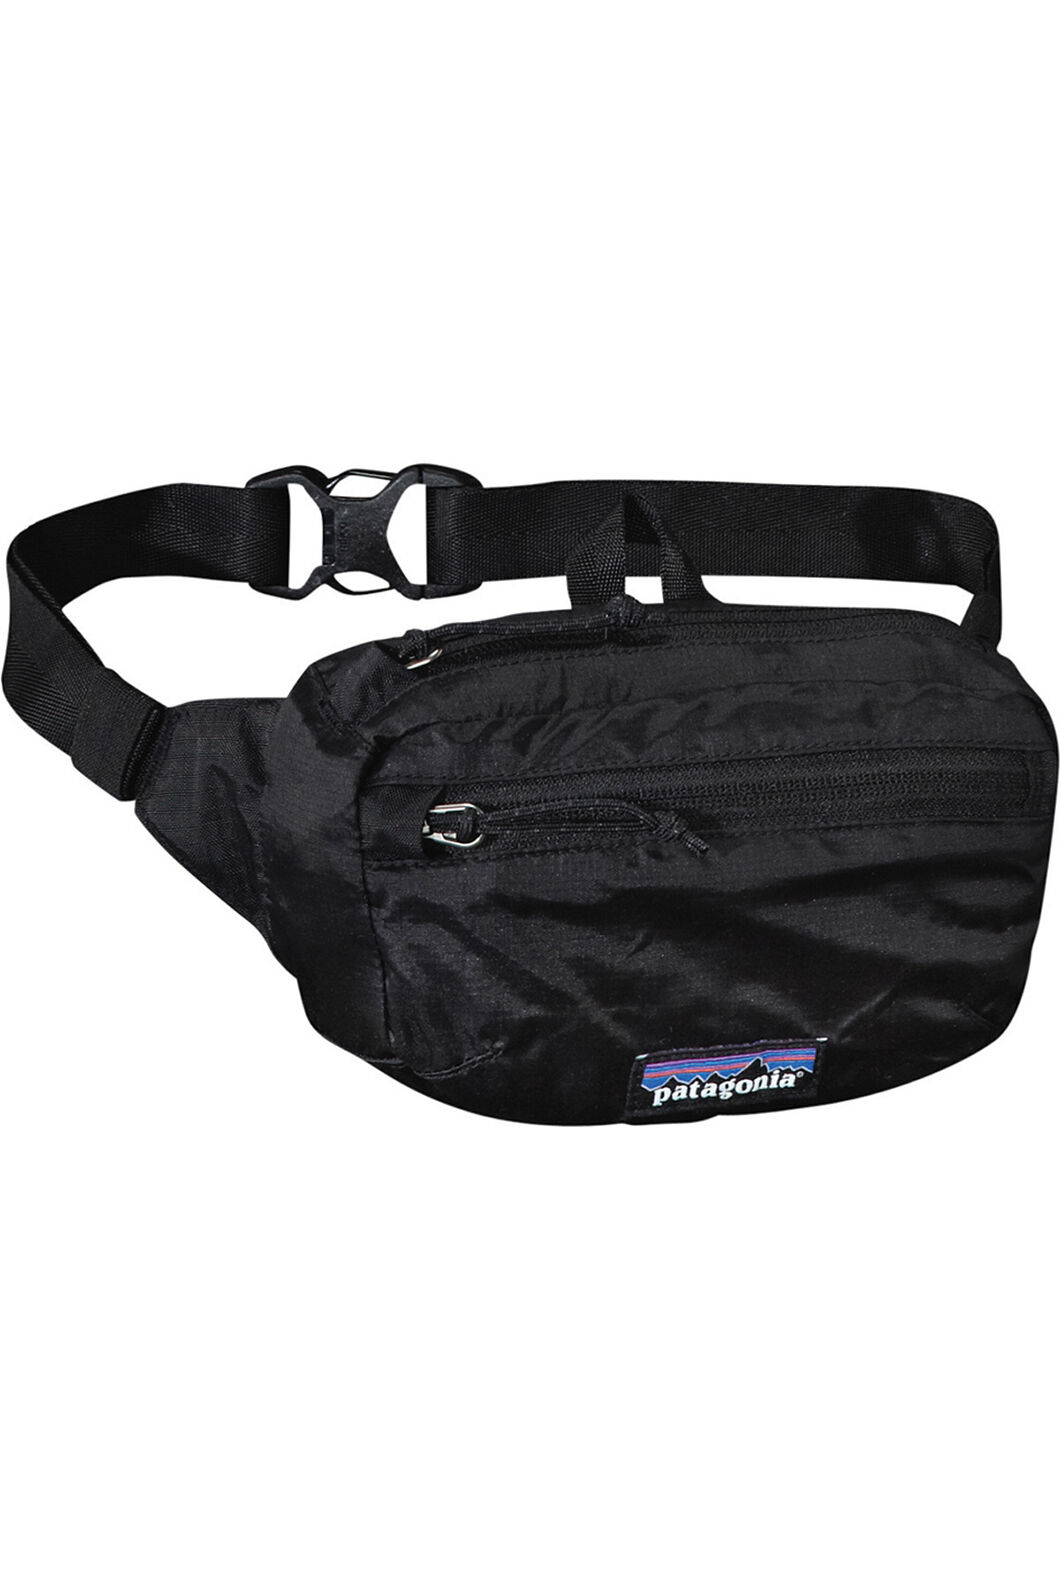 Patagonia Travel Mini Hip DaypackL, None, hi-res